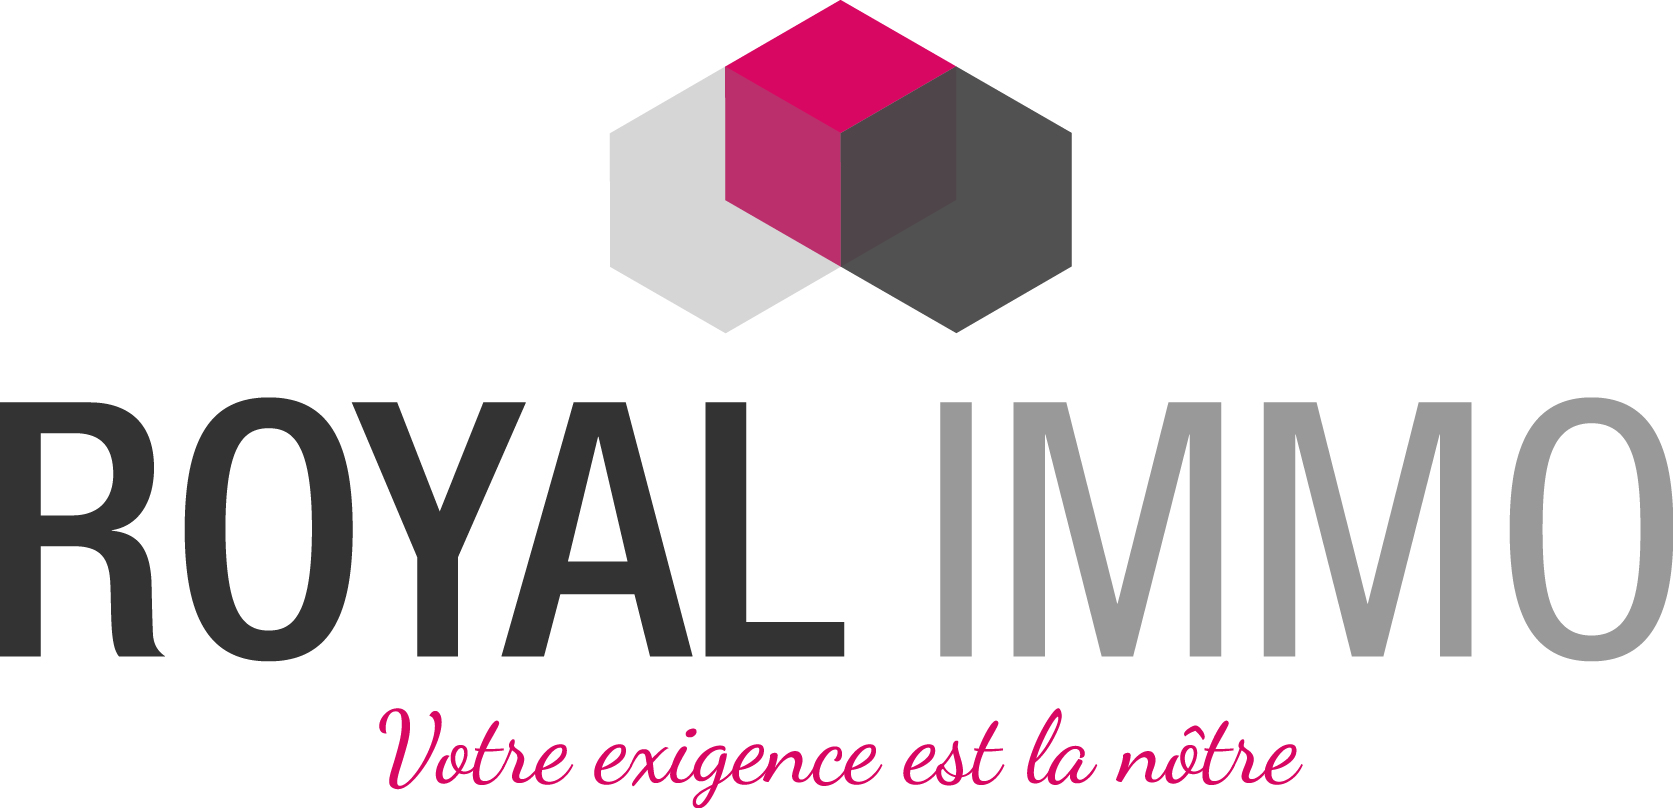 Royal Immo agence immobilière Toulon (83000)